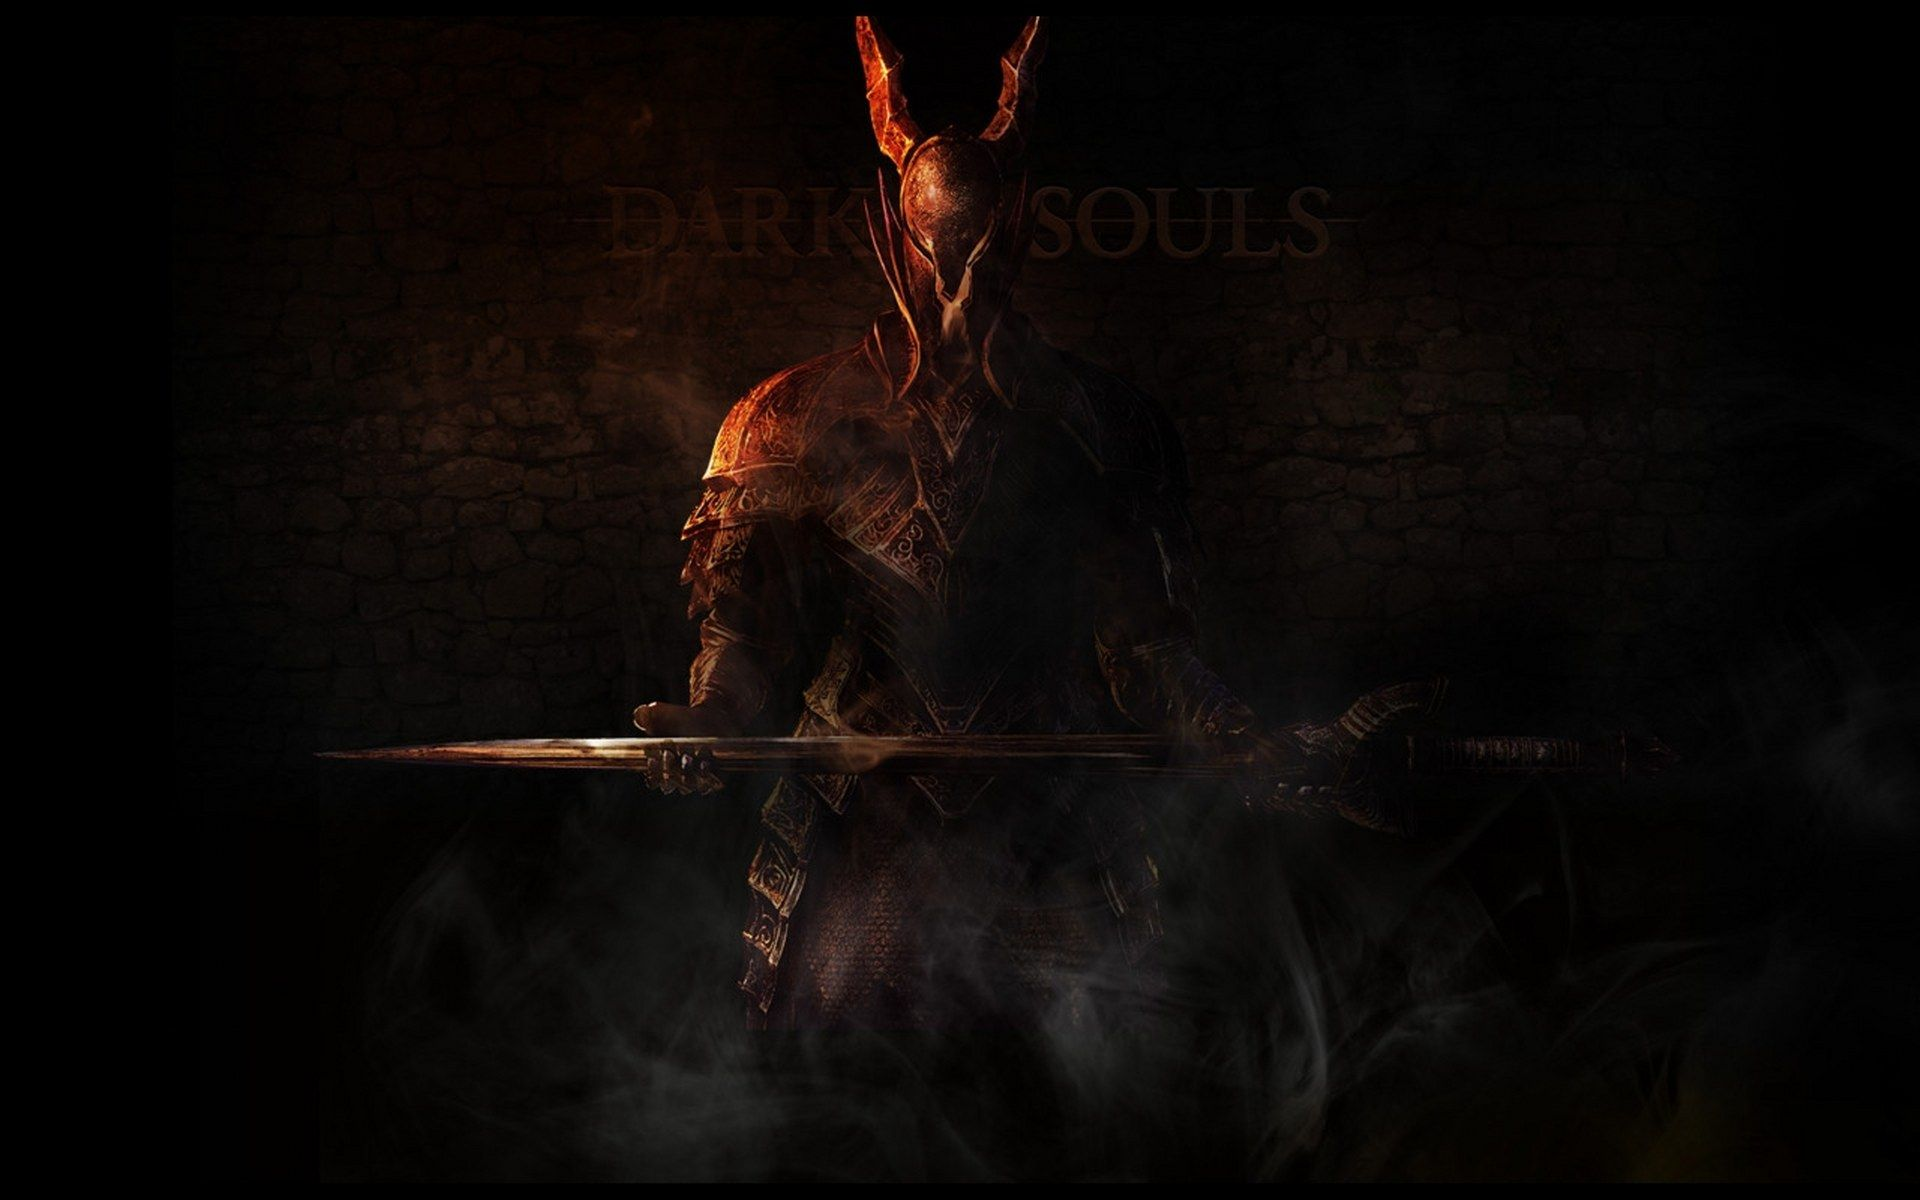 Dark Souls Black Knight Wallpaper Wallpapersafari Dark Souls